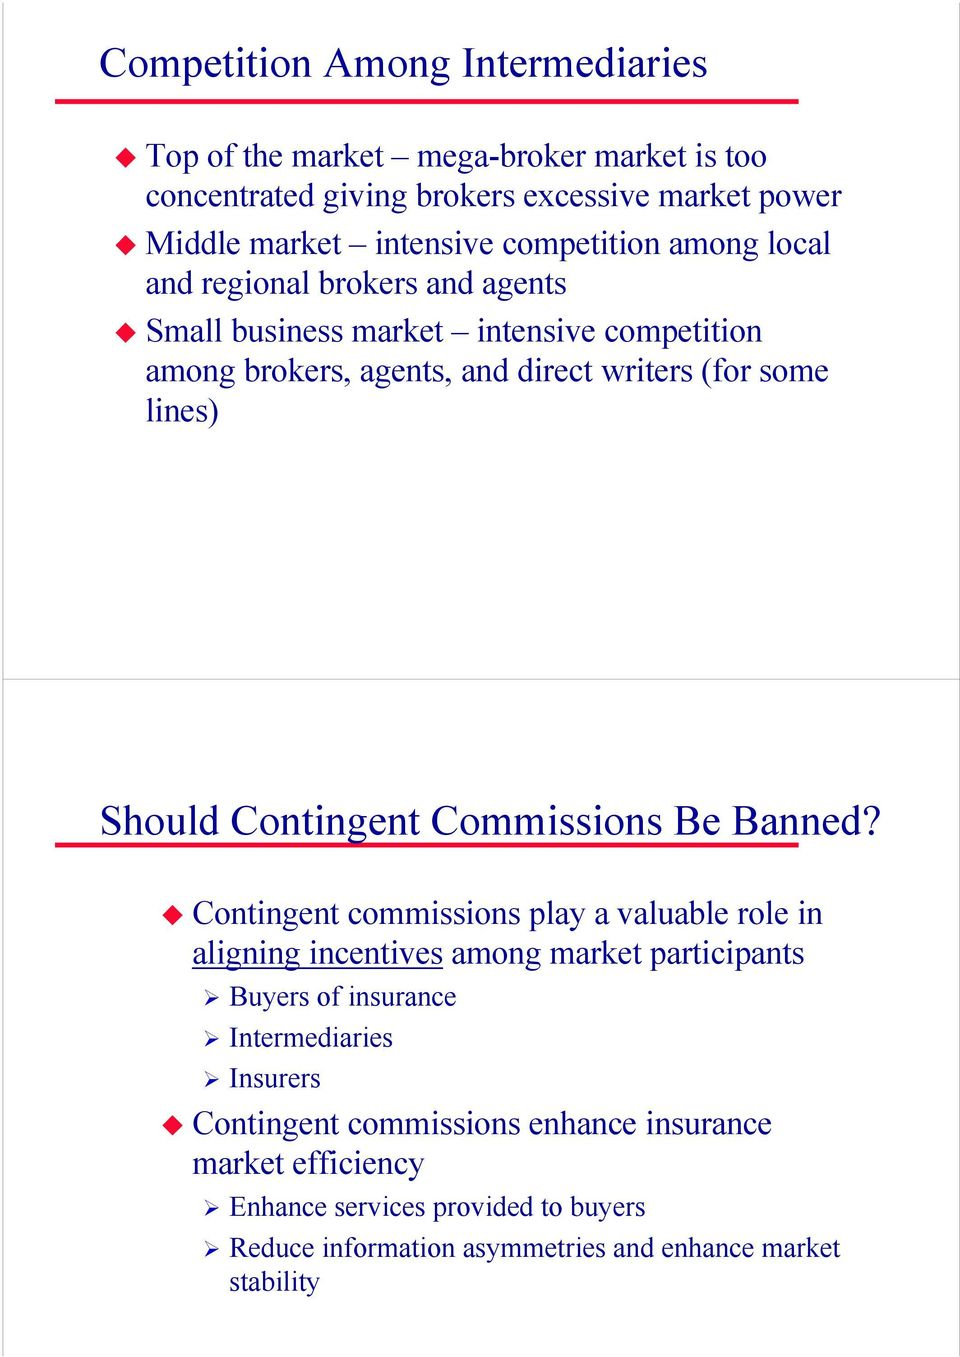 Should Contingent Commissions Be Banned?